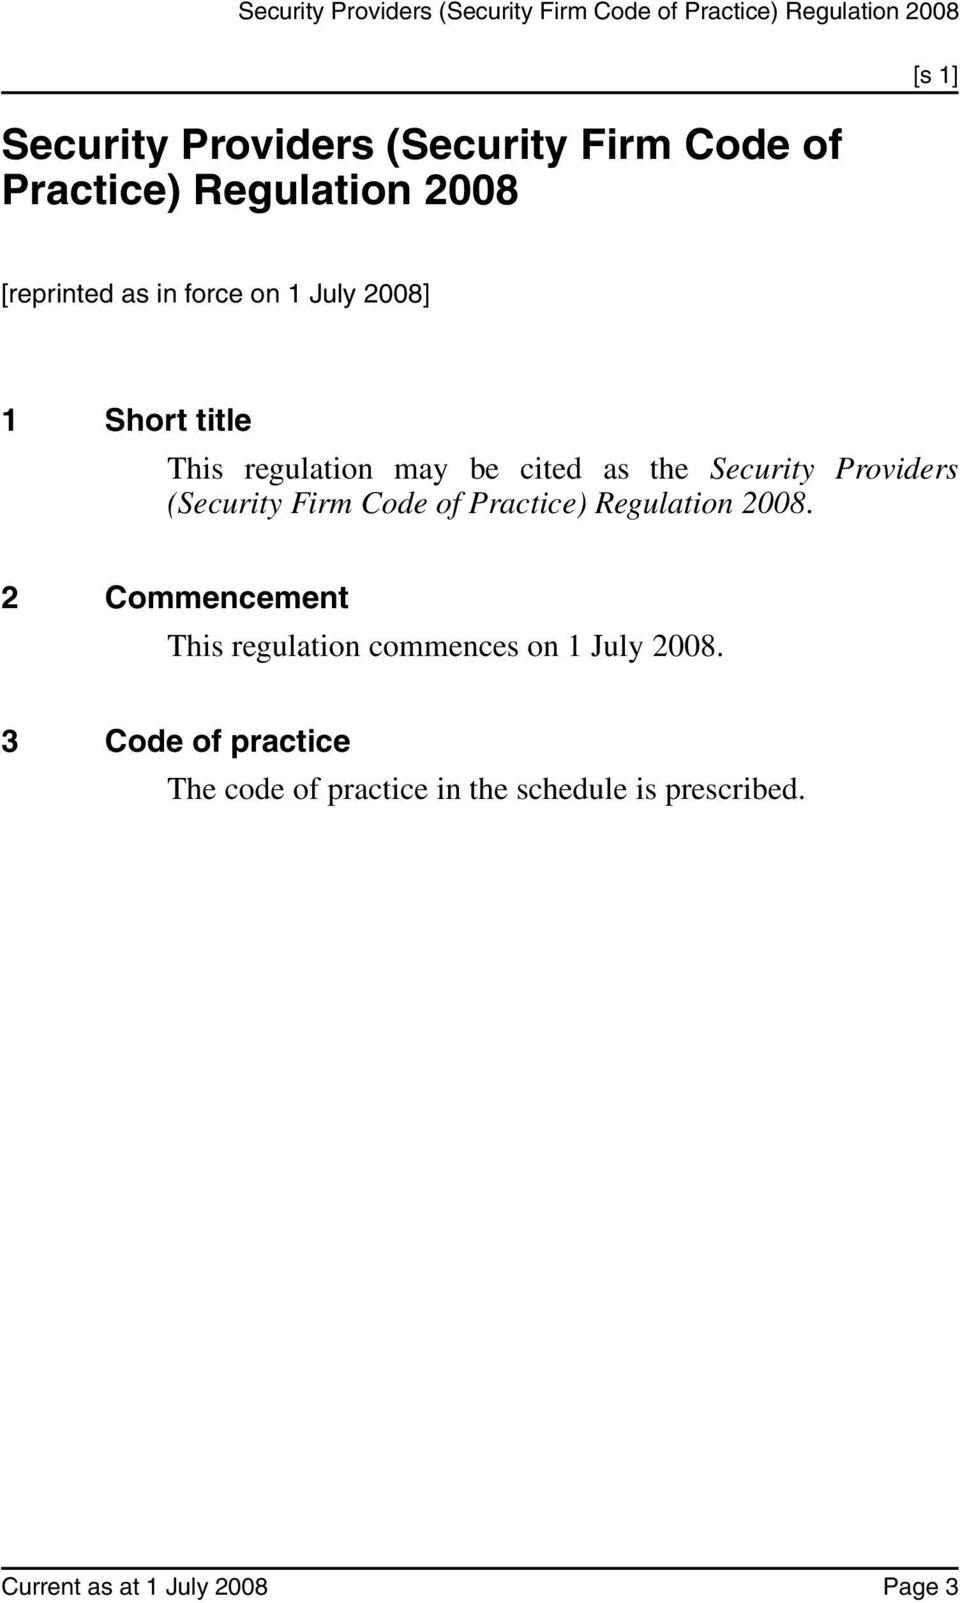 Firm Code of Practice) Regulation 2008. 2 Commencement This regulation commences on 1 July 2008.